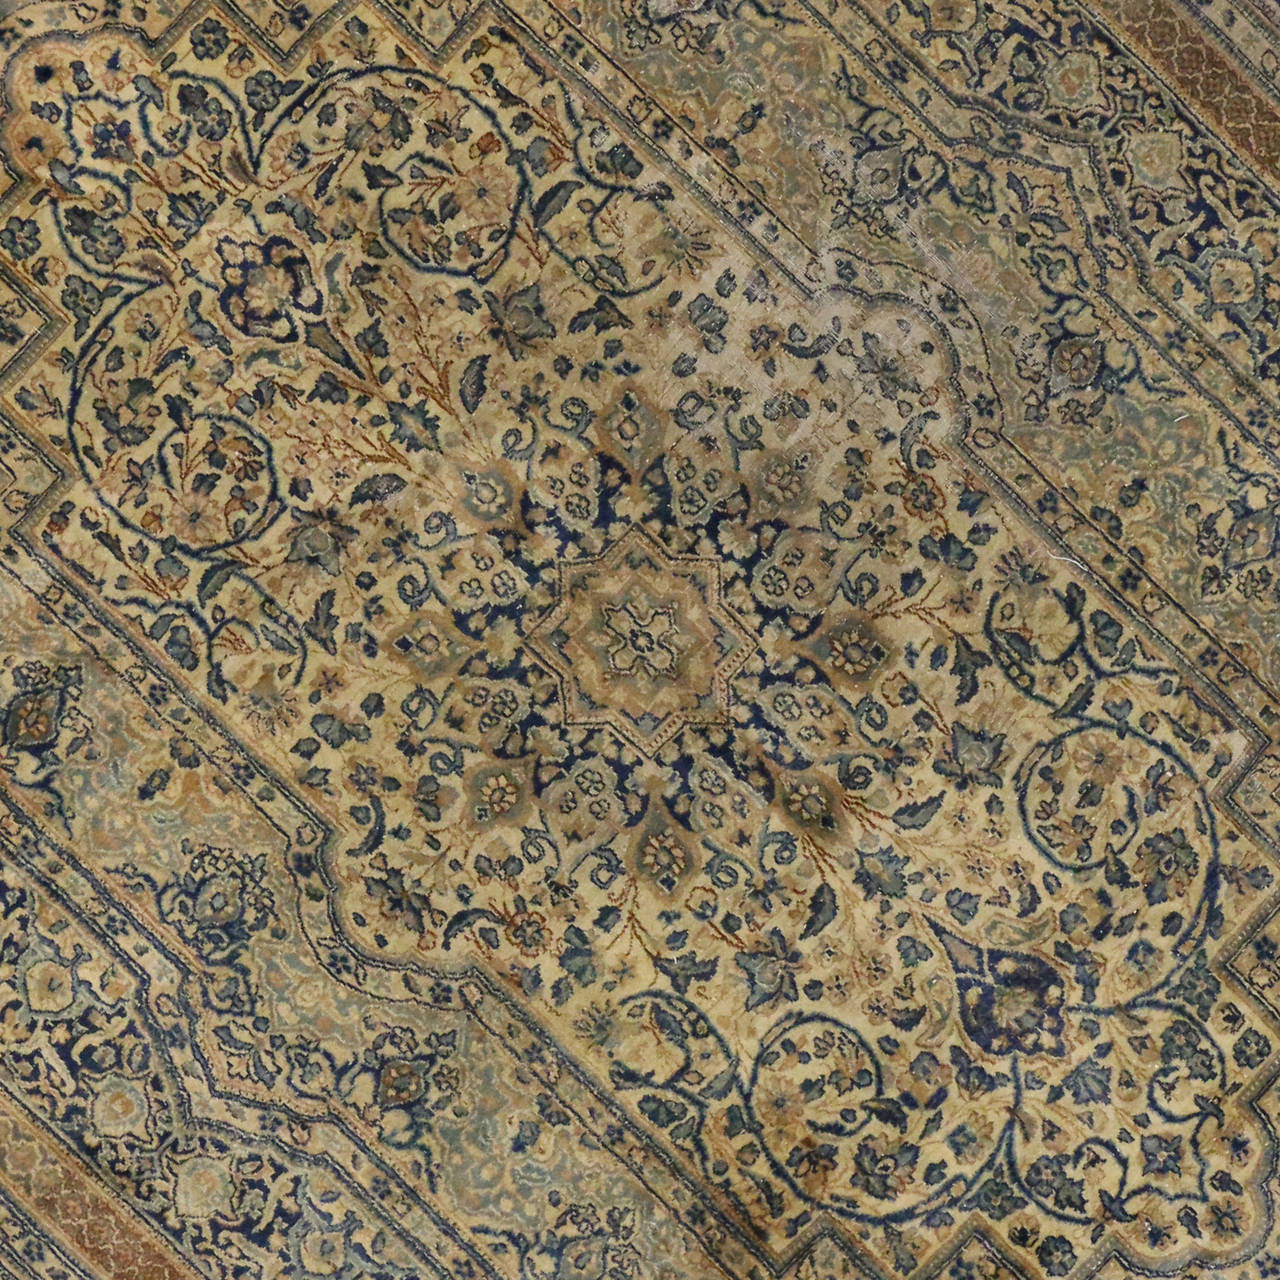 Antique Persian Kerman Area Rug with Hollywood Regency Style, Persian Kirman Rug For Sale 1